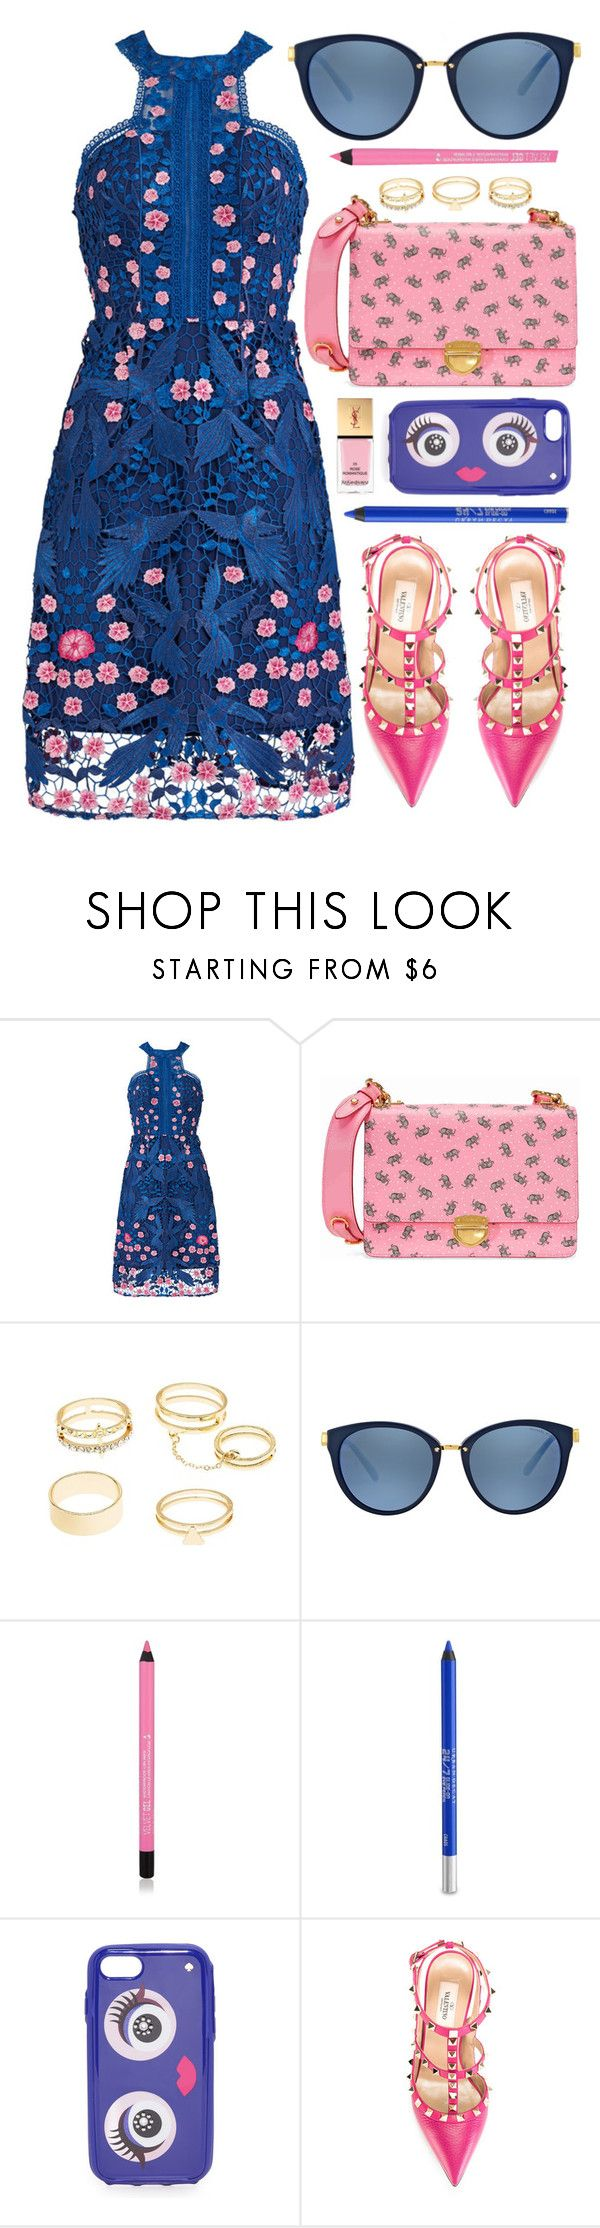 """Chic"" by monmondefou ❤ liked on Polyvore featuring Notte by Marchesa, Prada, Charlotte Russe, Michael Kors, Urban Decay, Kate Spade, Valentino, Yves Saint Laurent, Pink and Blue"